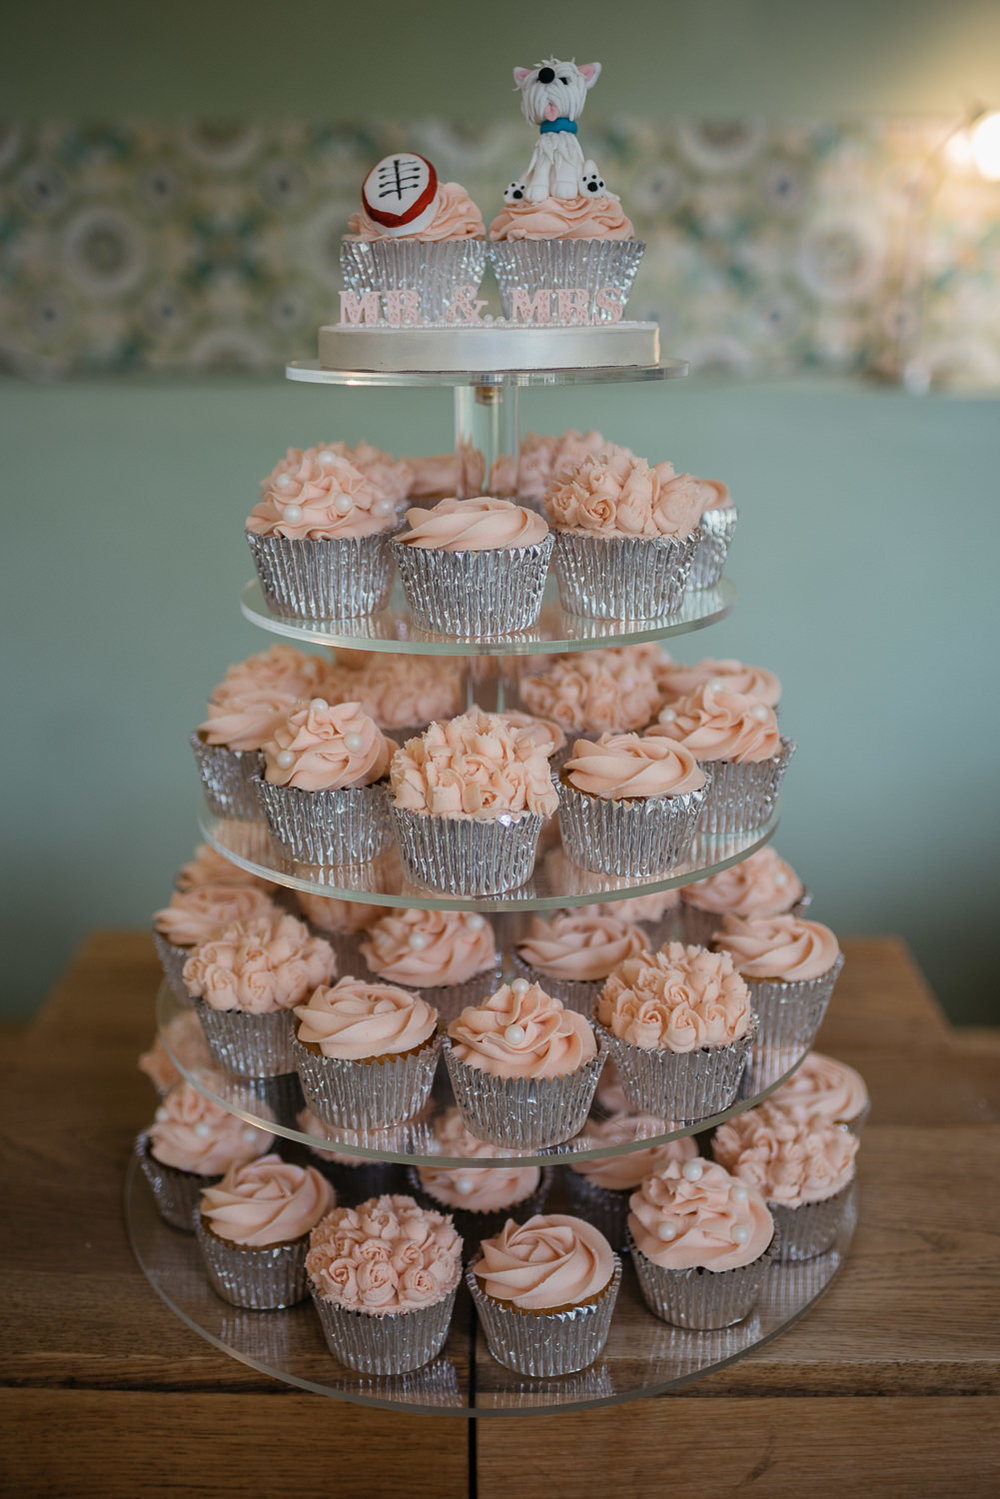 cup cakes at burghley house wedding